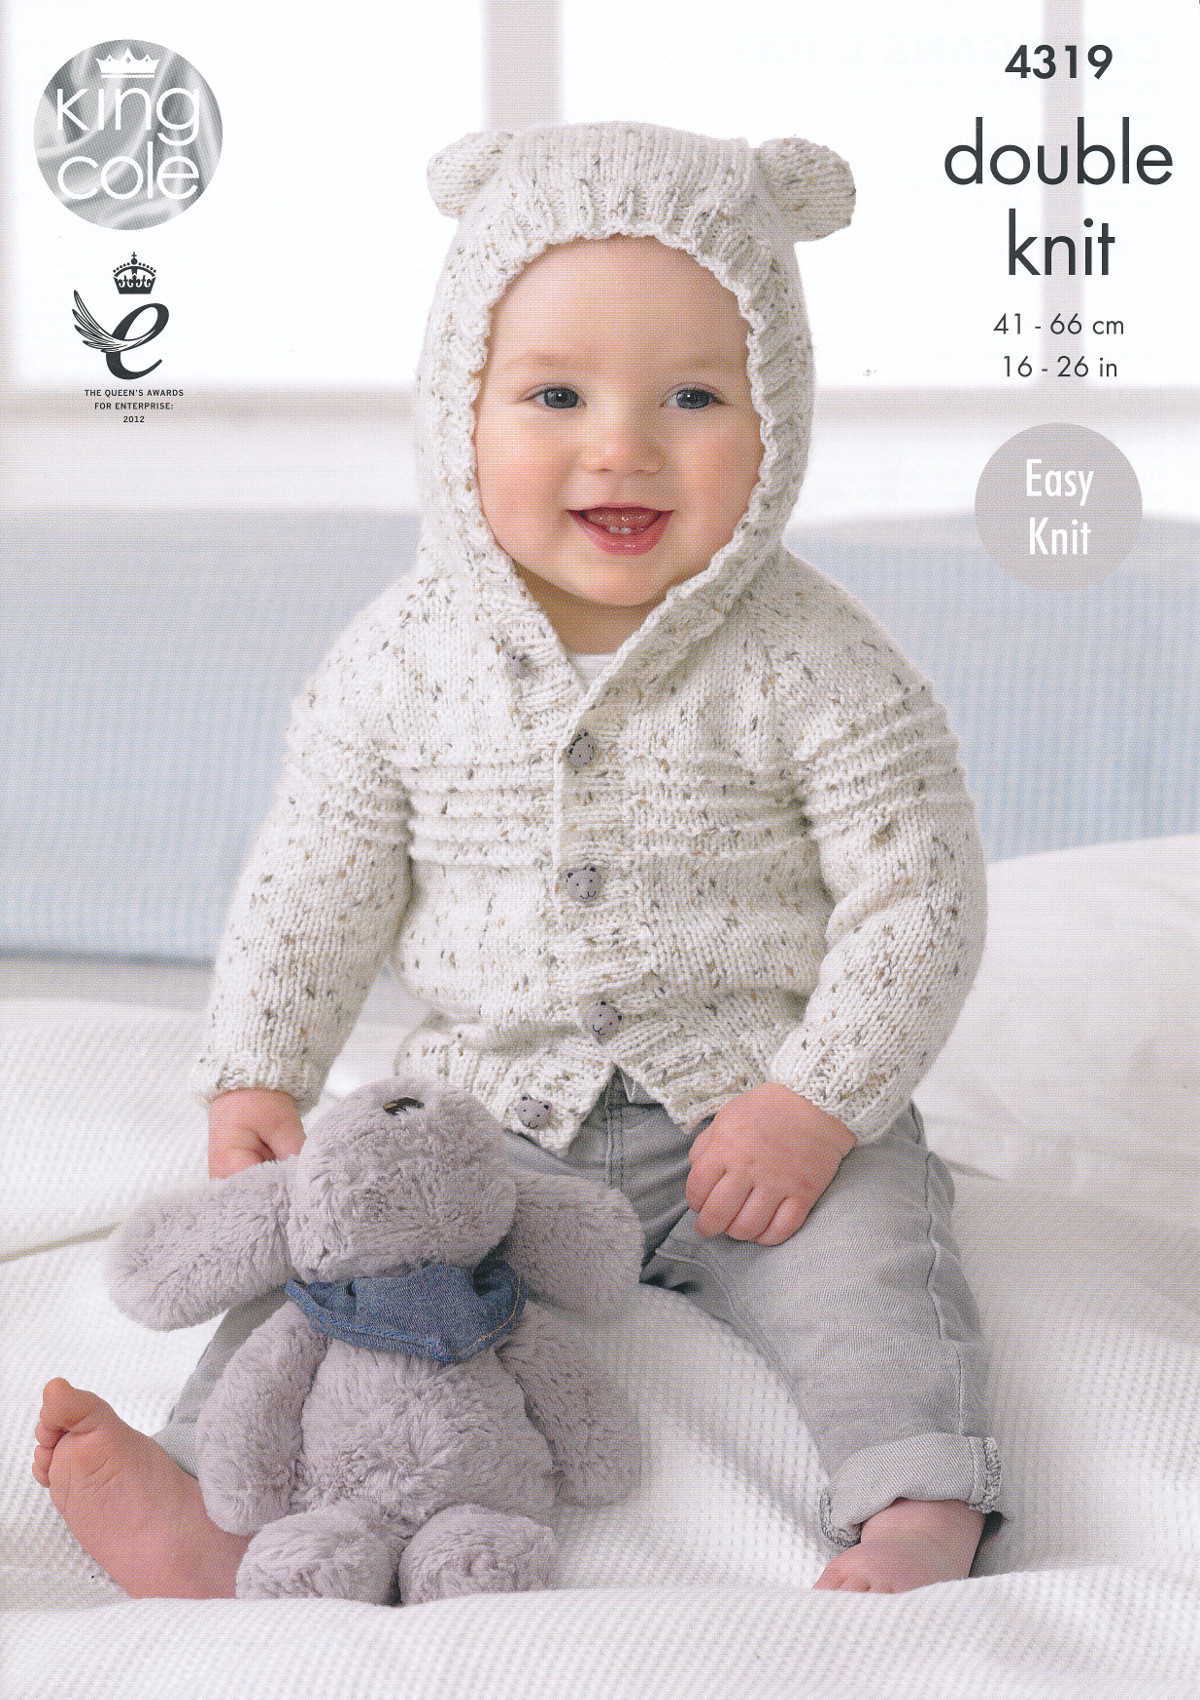 Knitting Patterns For Babies Double Knitting : King Cole Double Knitting Pattern Baby Cardigans Hat Easy Knit Smarty DK 4319...